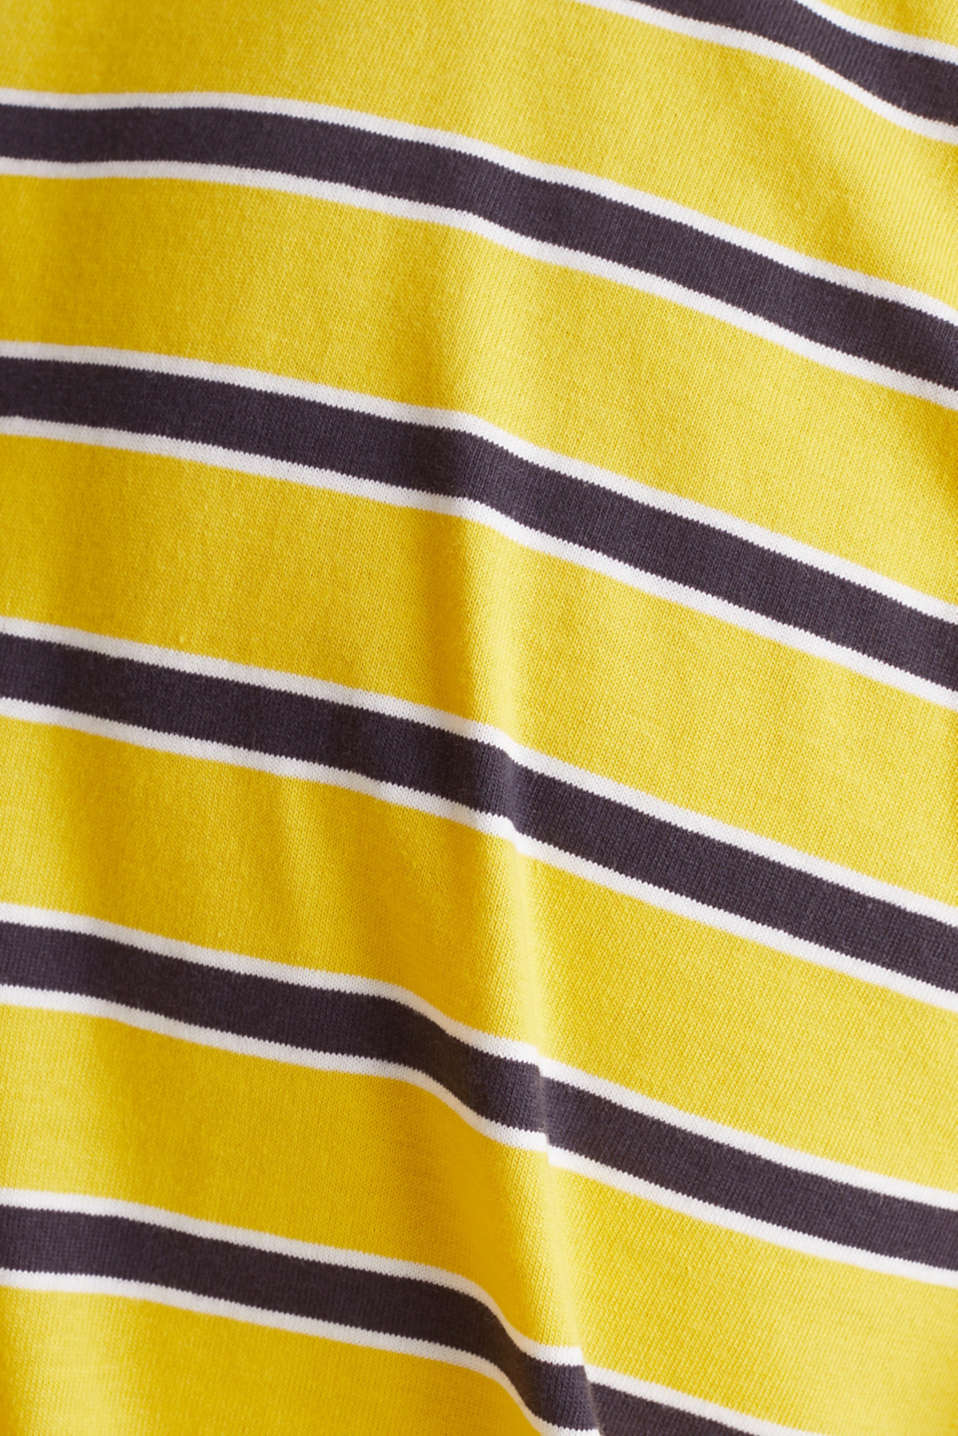 Jersey T-shirt with stripes, 100% cotton, YELLOW 3, detail image number 4